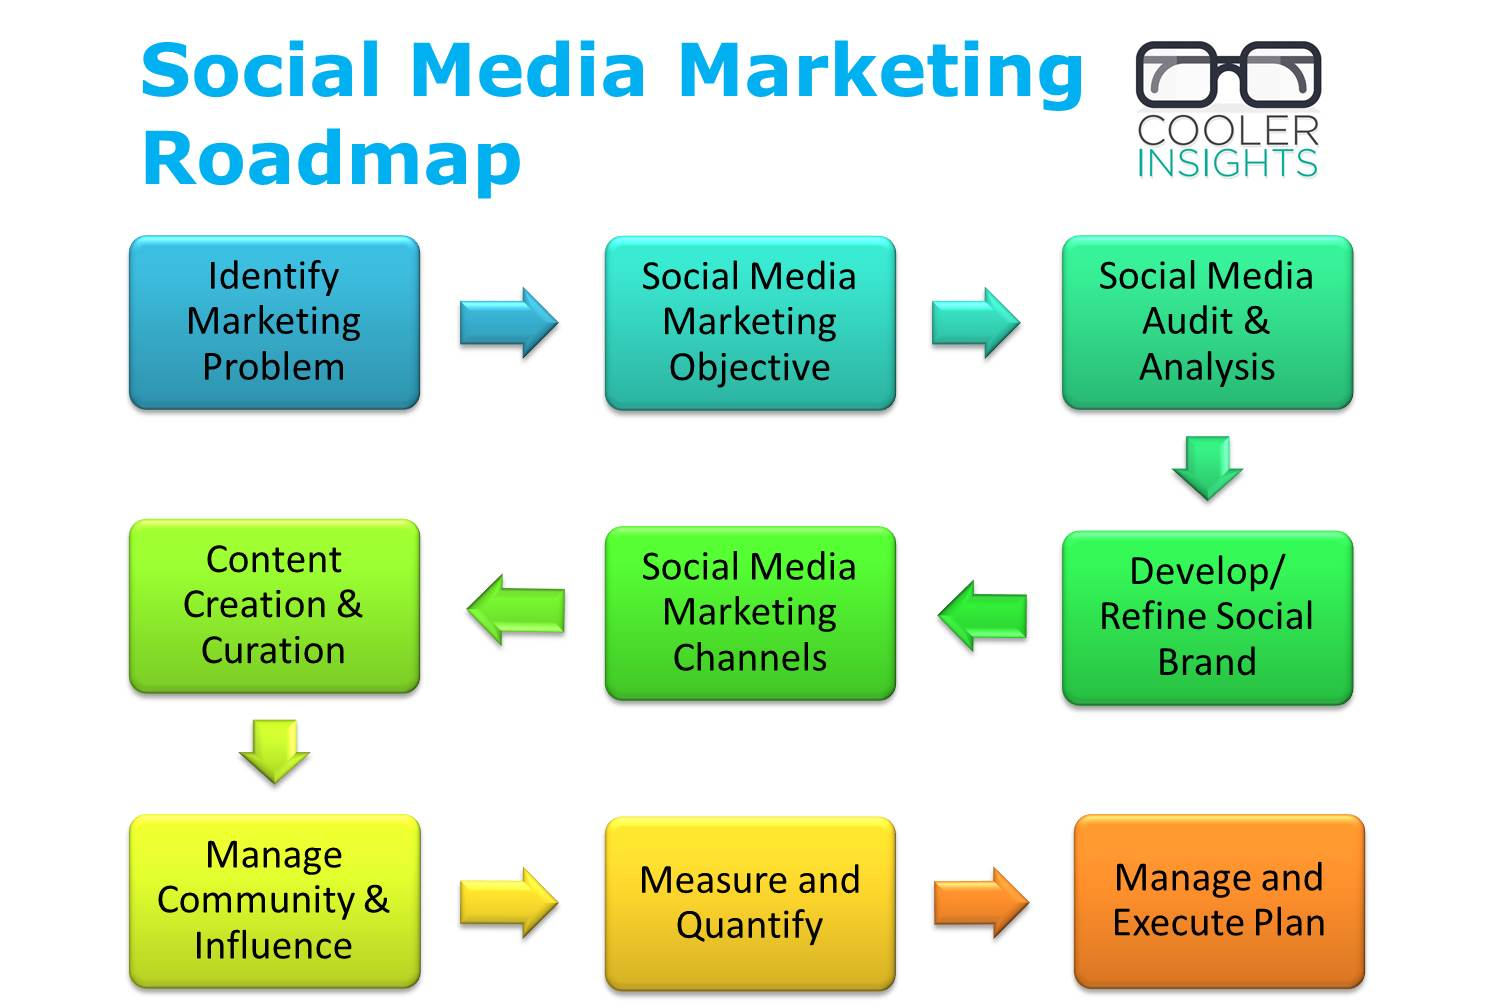 social media marketing roadmap a simple 9 step process